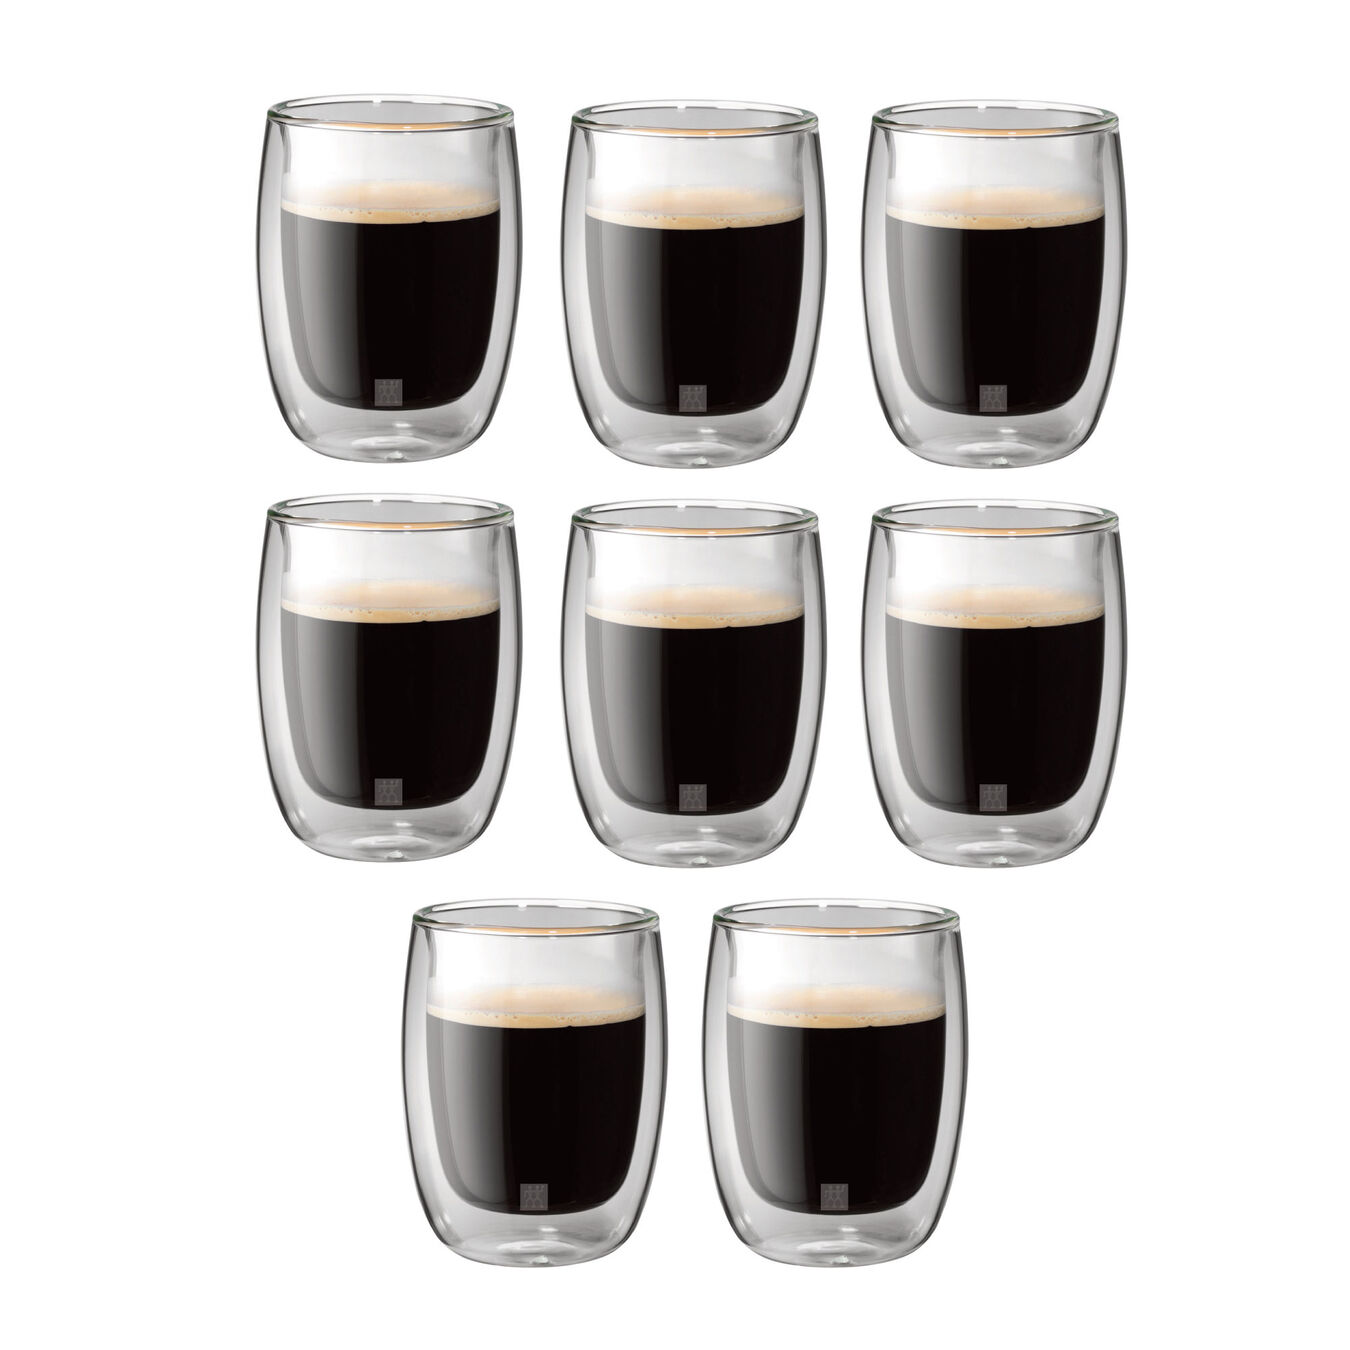 8 Piece Coffee Glass Set - Value Pack,,large 2